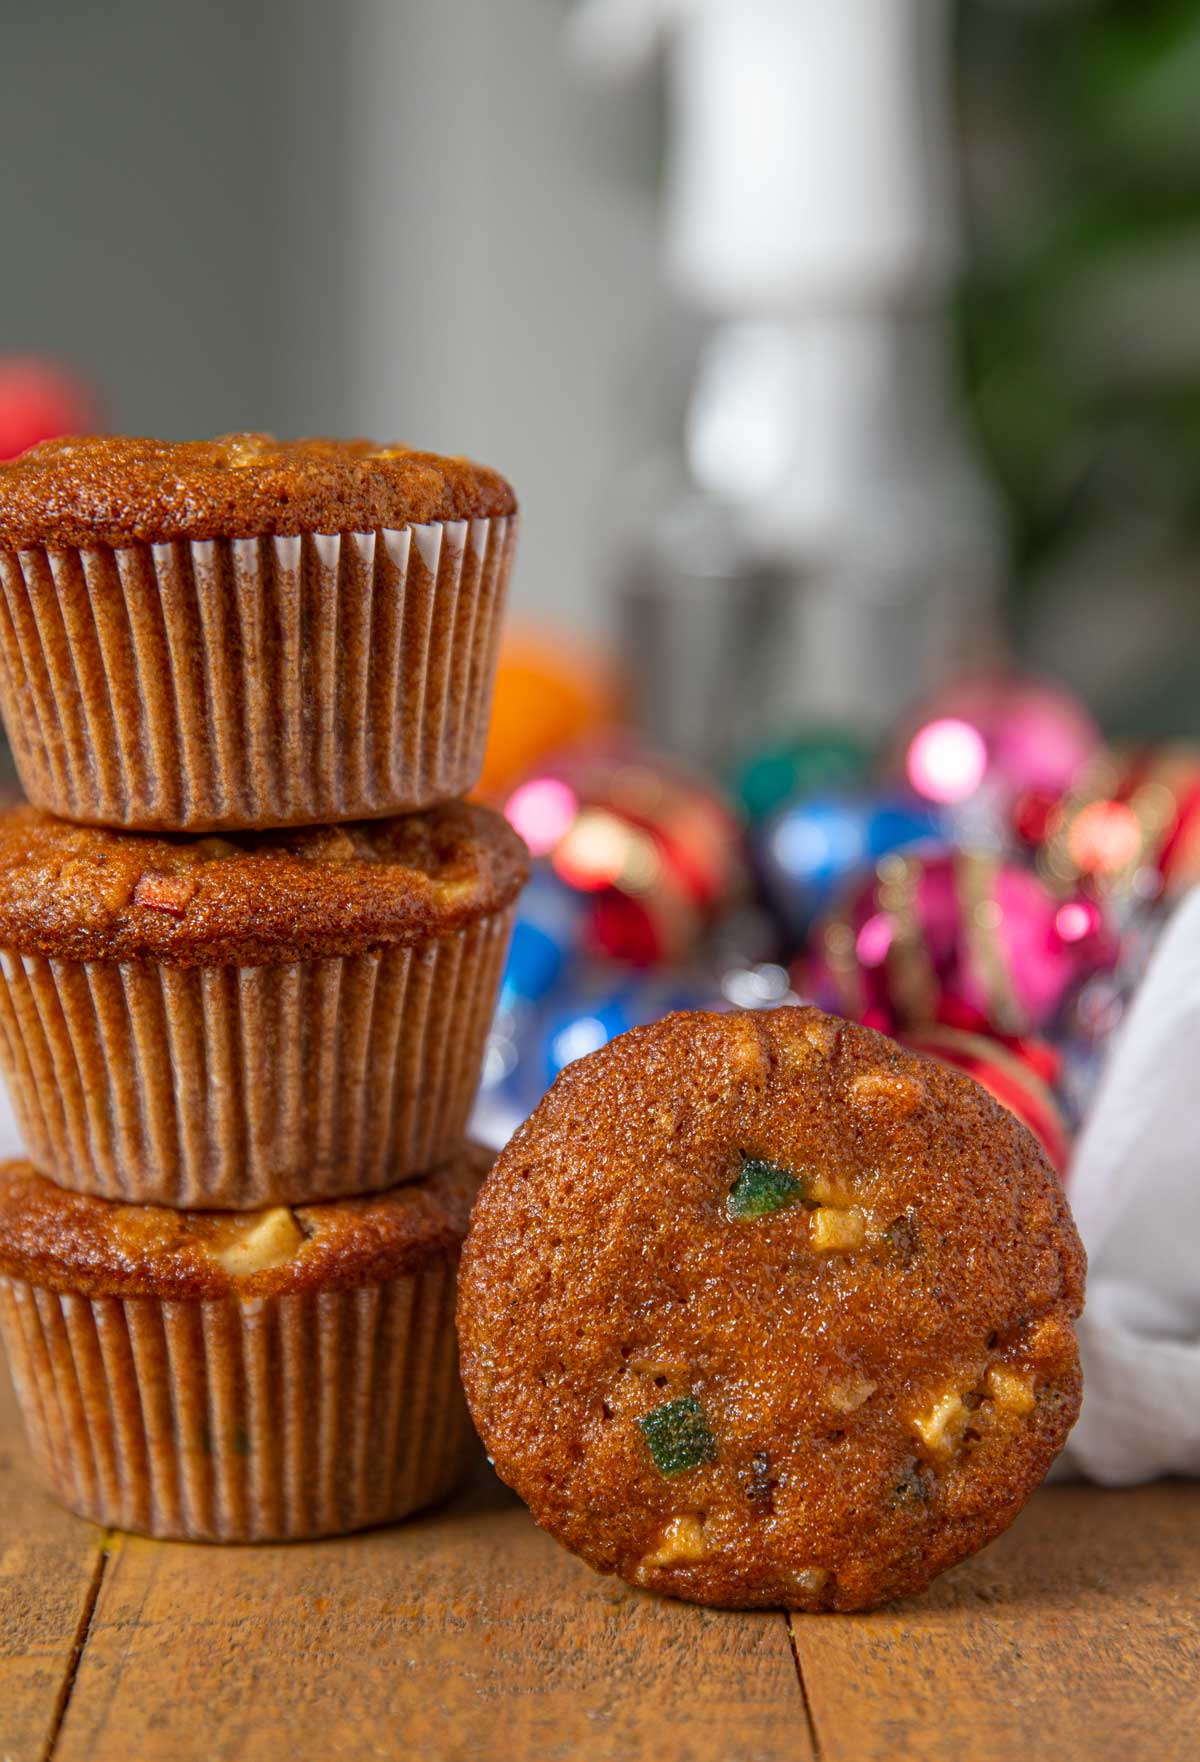 Fruit Cake Muffins in stack